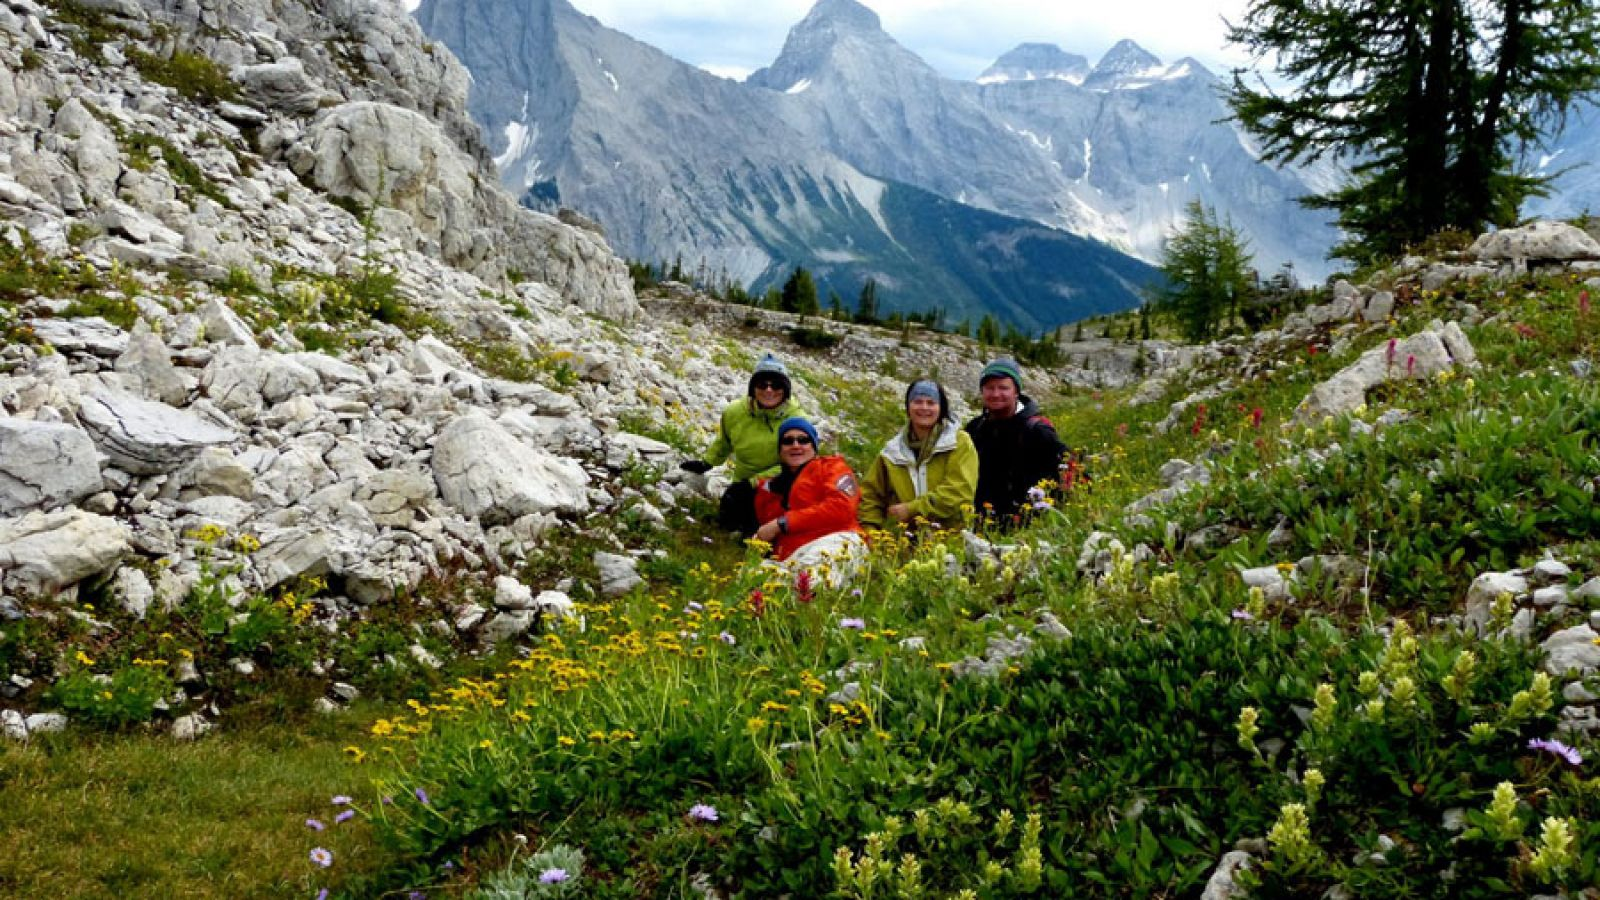 Hiking, nature touring and spectacular wilderness.